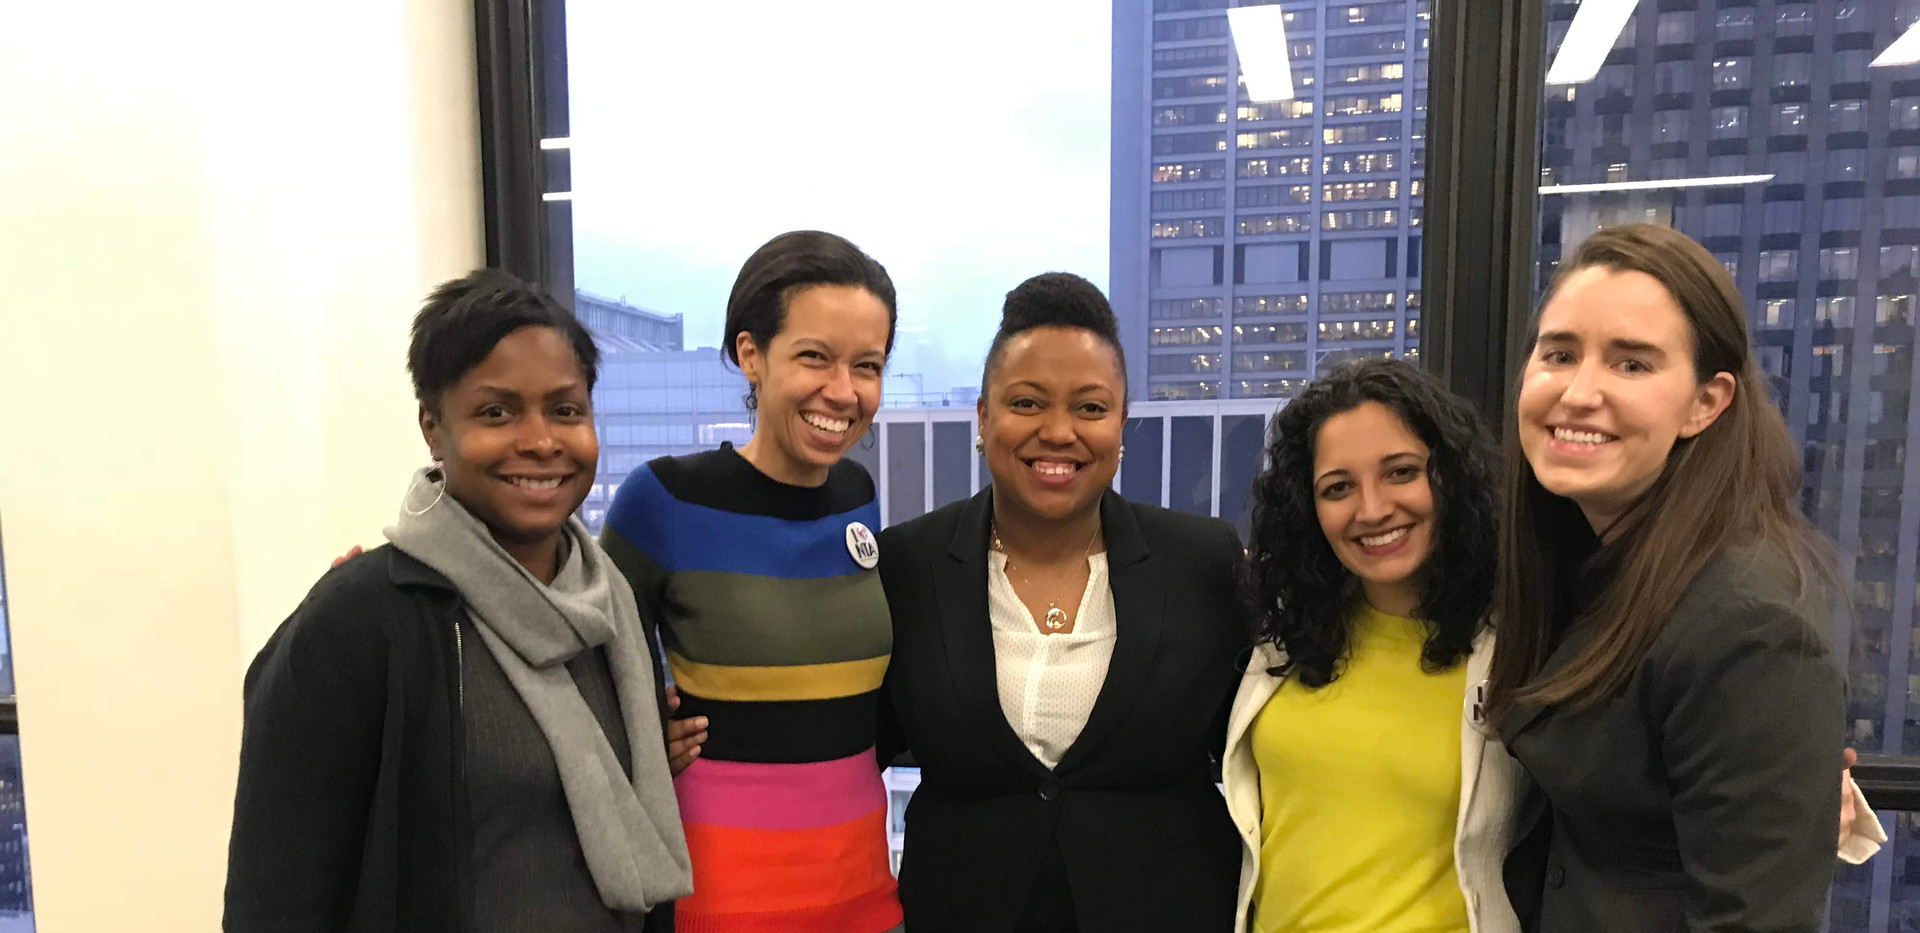 The injunction filed is heard on December 3rd, 2018. The litigation team is all smiles after the court's decision. (L to R: Parent Anika Matthews-Feldman, LSC President Elisabeth Greer, attorney Candace Moore, CUE ED Niketa Brar, and attorney Kate Gladson.